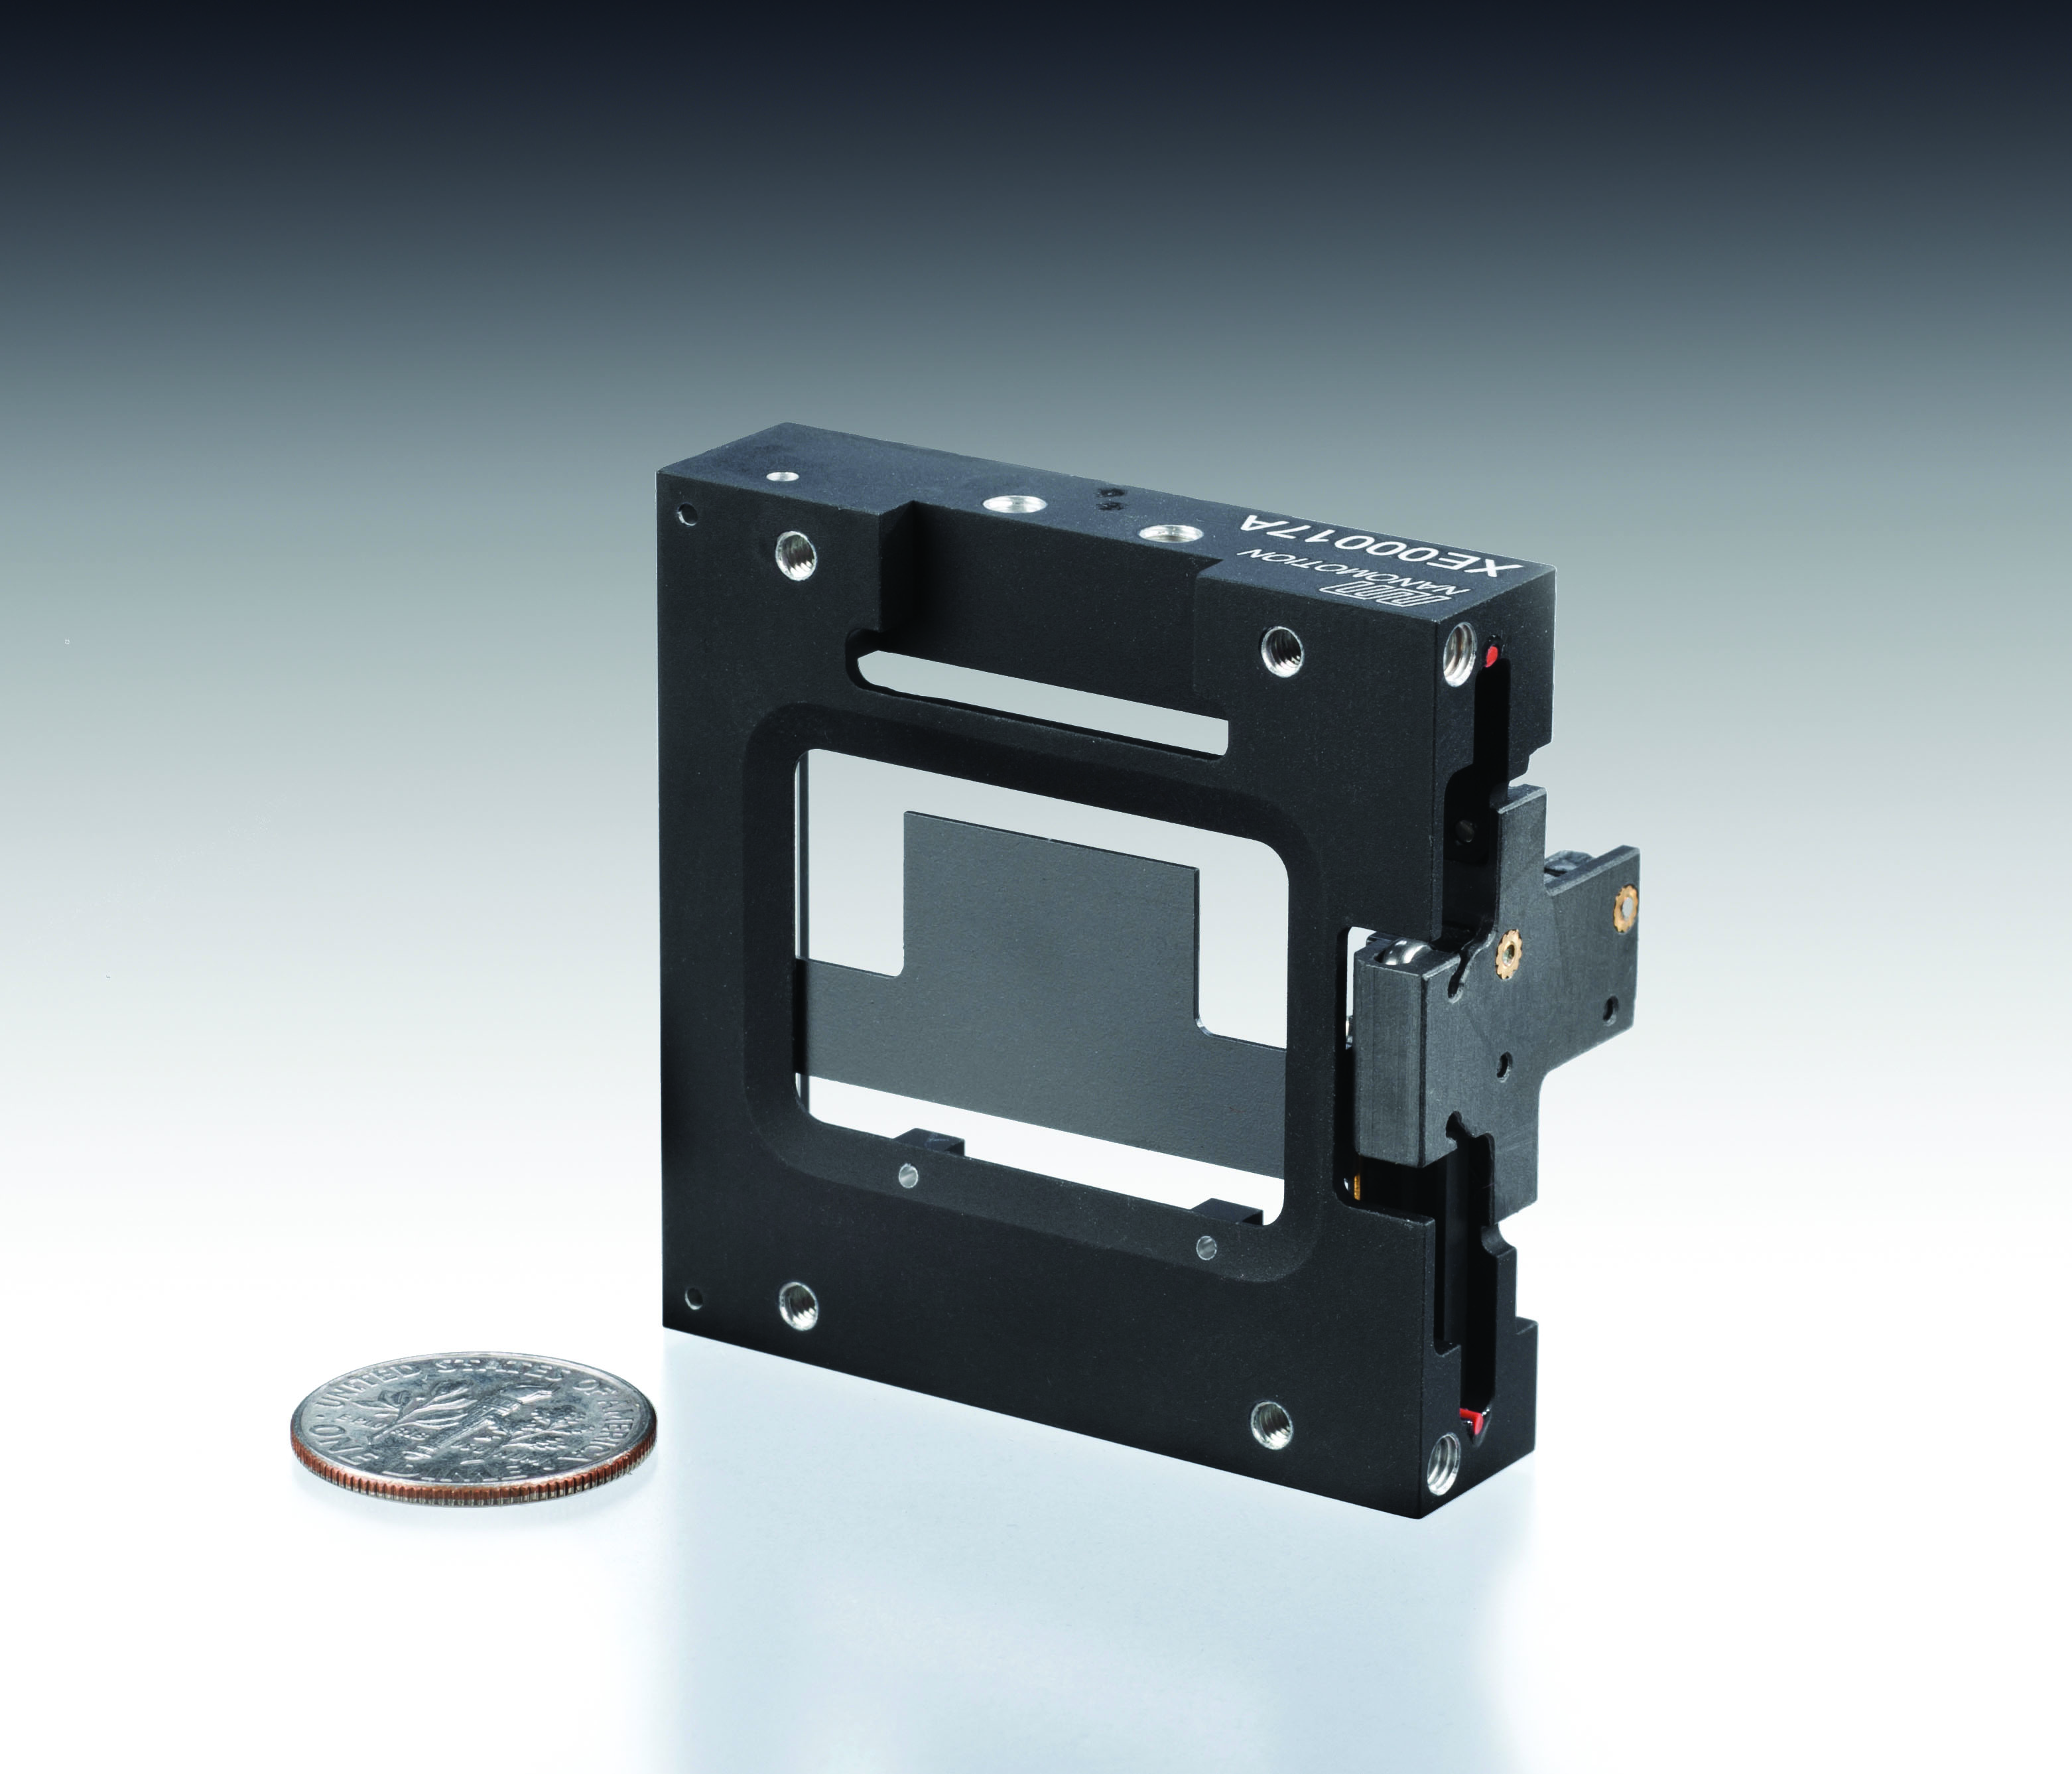 Johnson Electric's linear and rotary piezo shutter products